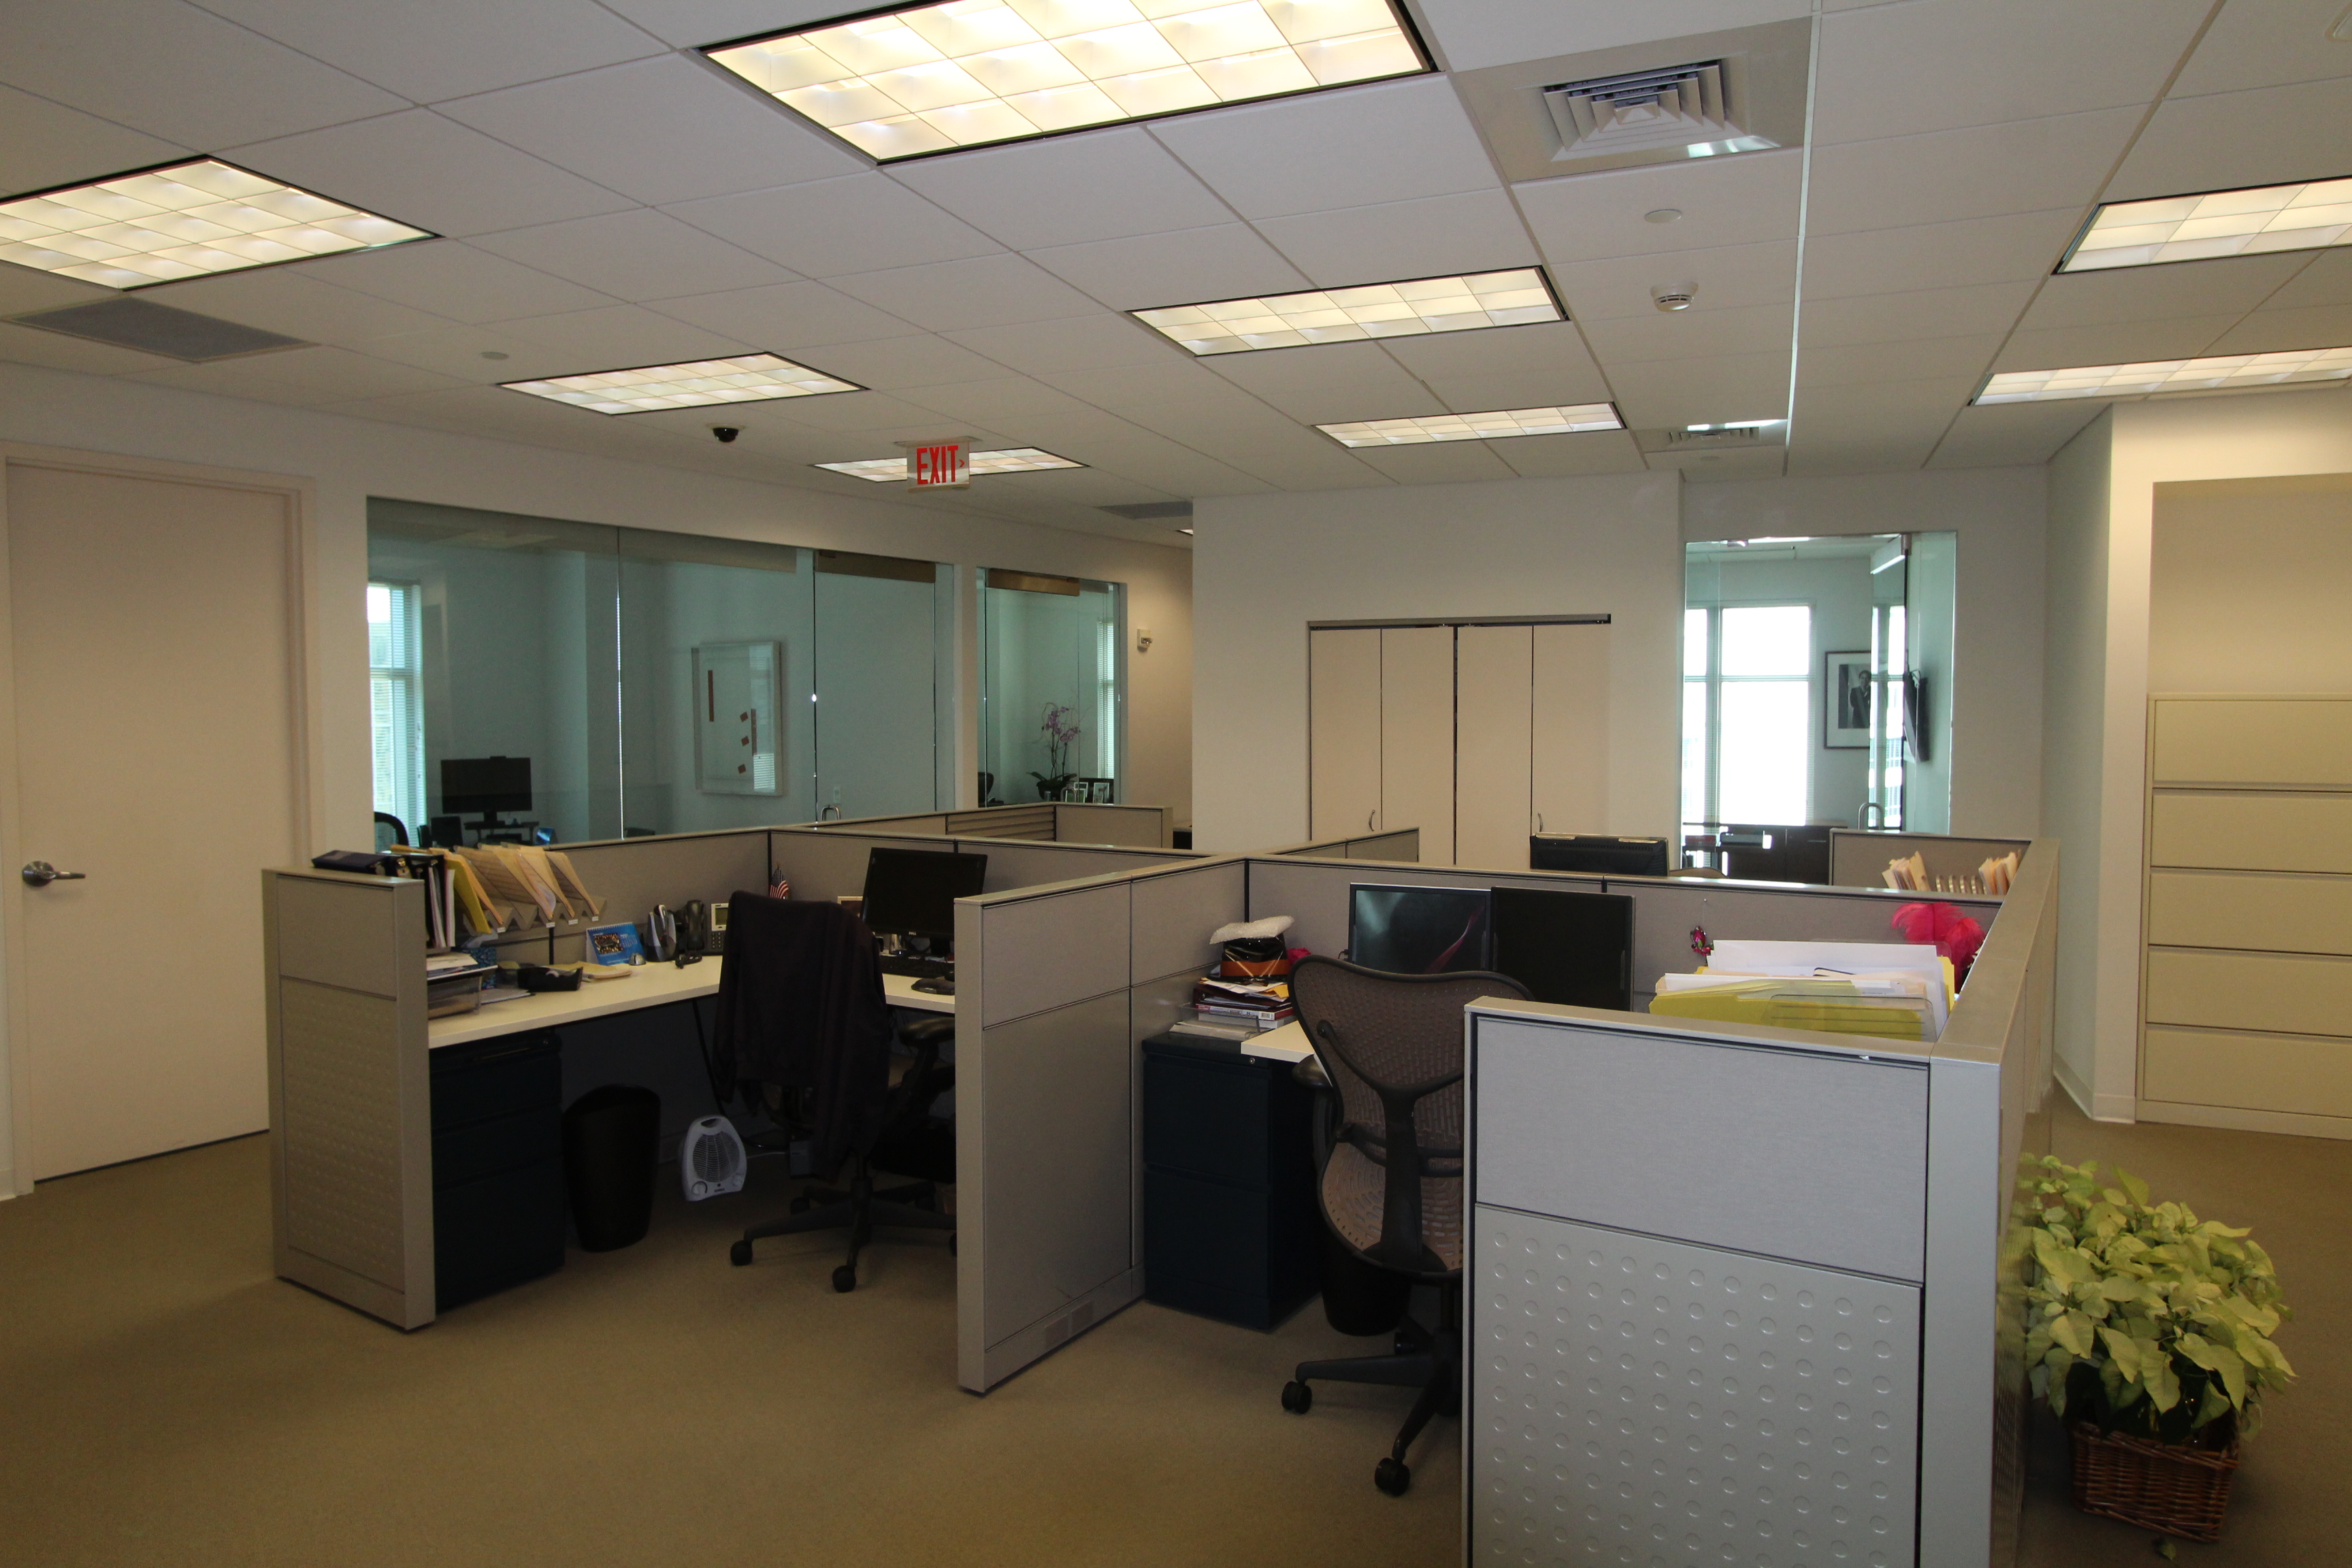 Gables Of St Morris alhambra towers – world class office building in coral